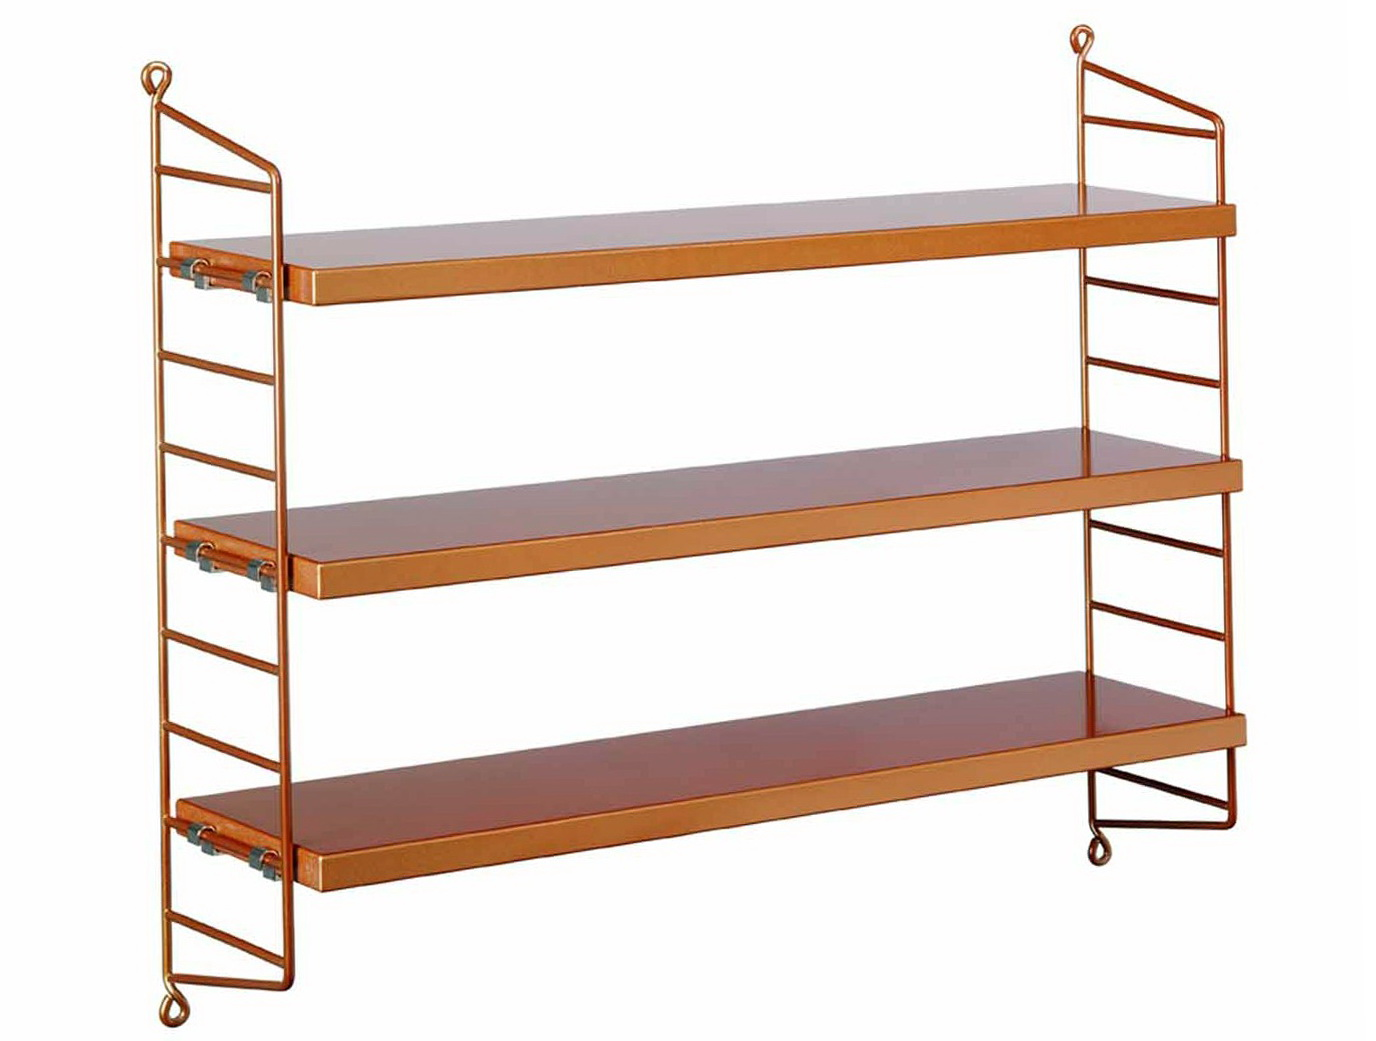 Wall Mounted Shelving Unit